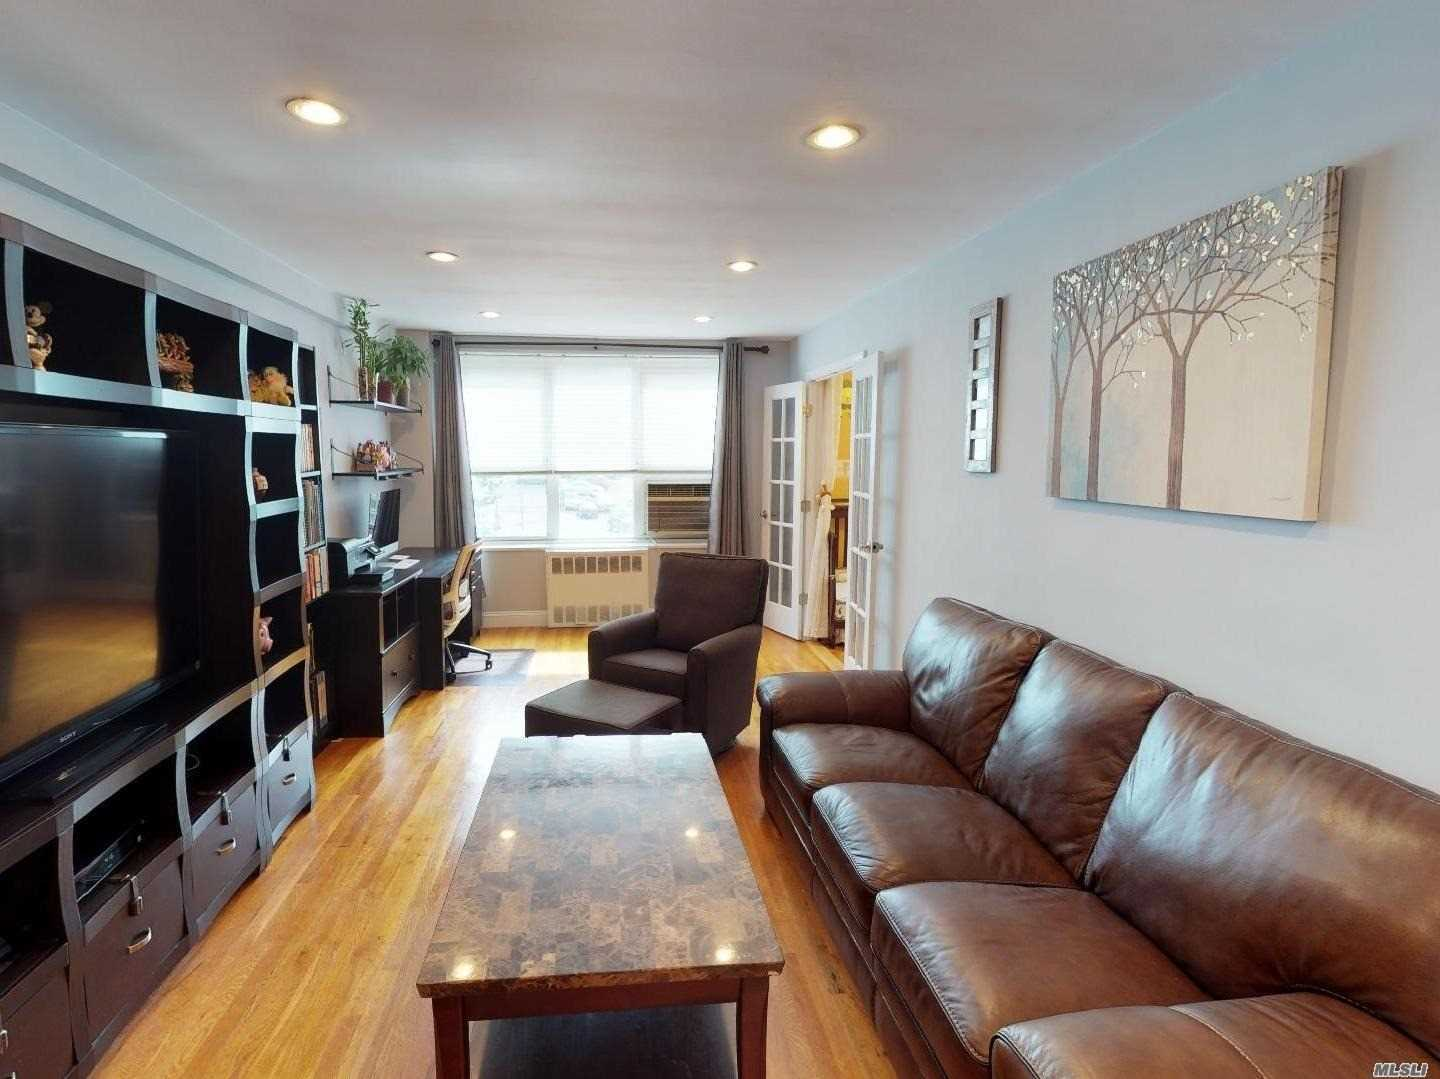 Beautiful Updated Junior 4 Apartment In Mint Condition Currently Being Used As A 2 Bedroom!(See Floor Plan), Recessed Lighting Throught. Low Maintenance And All Utilities Included!! Large Playground And Park Area. Near All: Transportation, Express Bus To Nyc, Q28 And Q13 To Flushing, Shopping, Supermarket, Close To Major Highways. Parking $60 Monthly, Extra Charge For Ac, Co-Op Owns Land. School District 26. Must See 3D Interactive Virtual Tour. Click Virtual Tour.